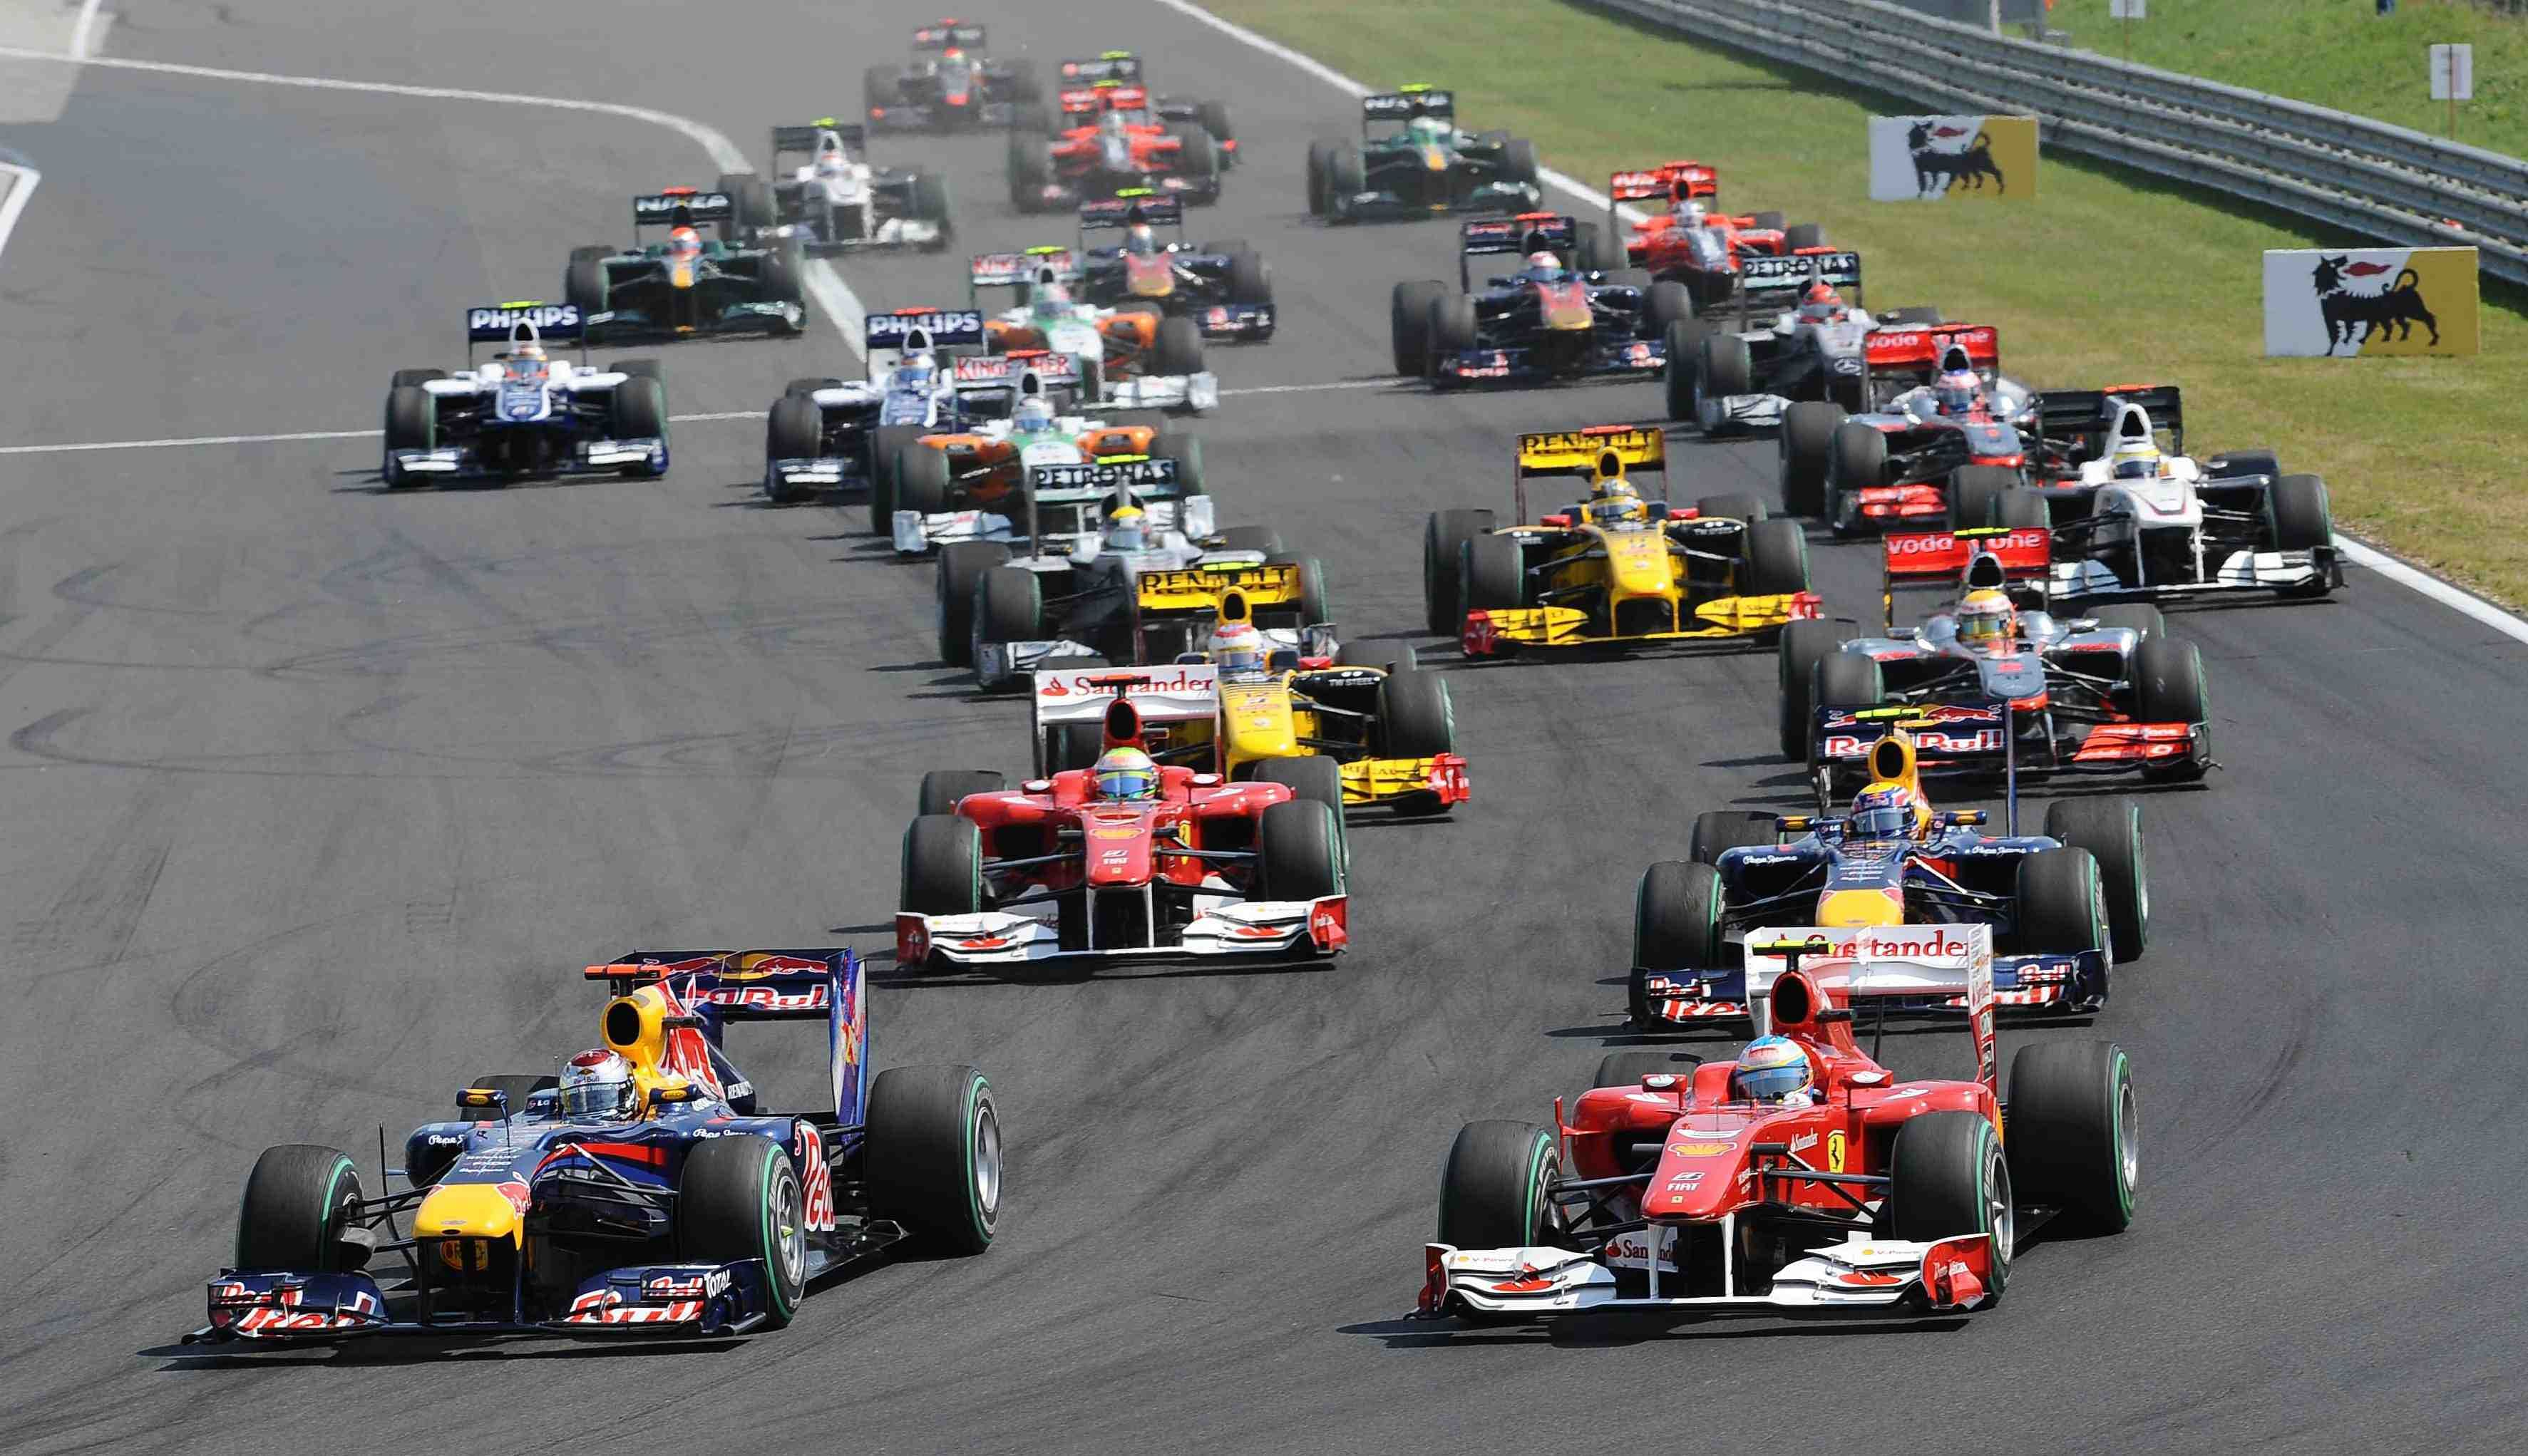 Have F1 drivers become obsolete?